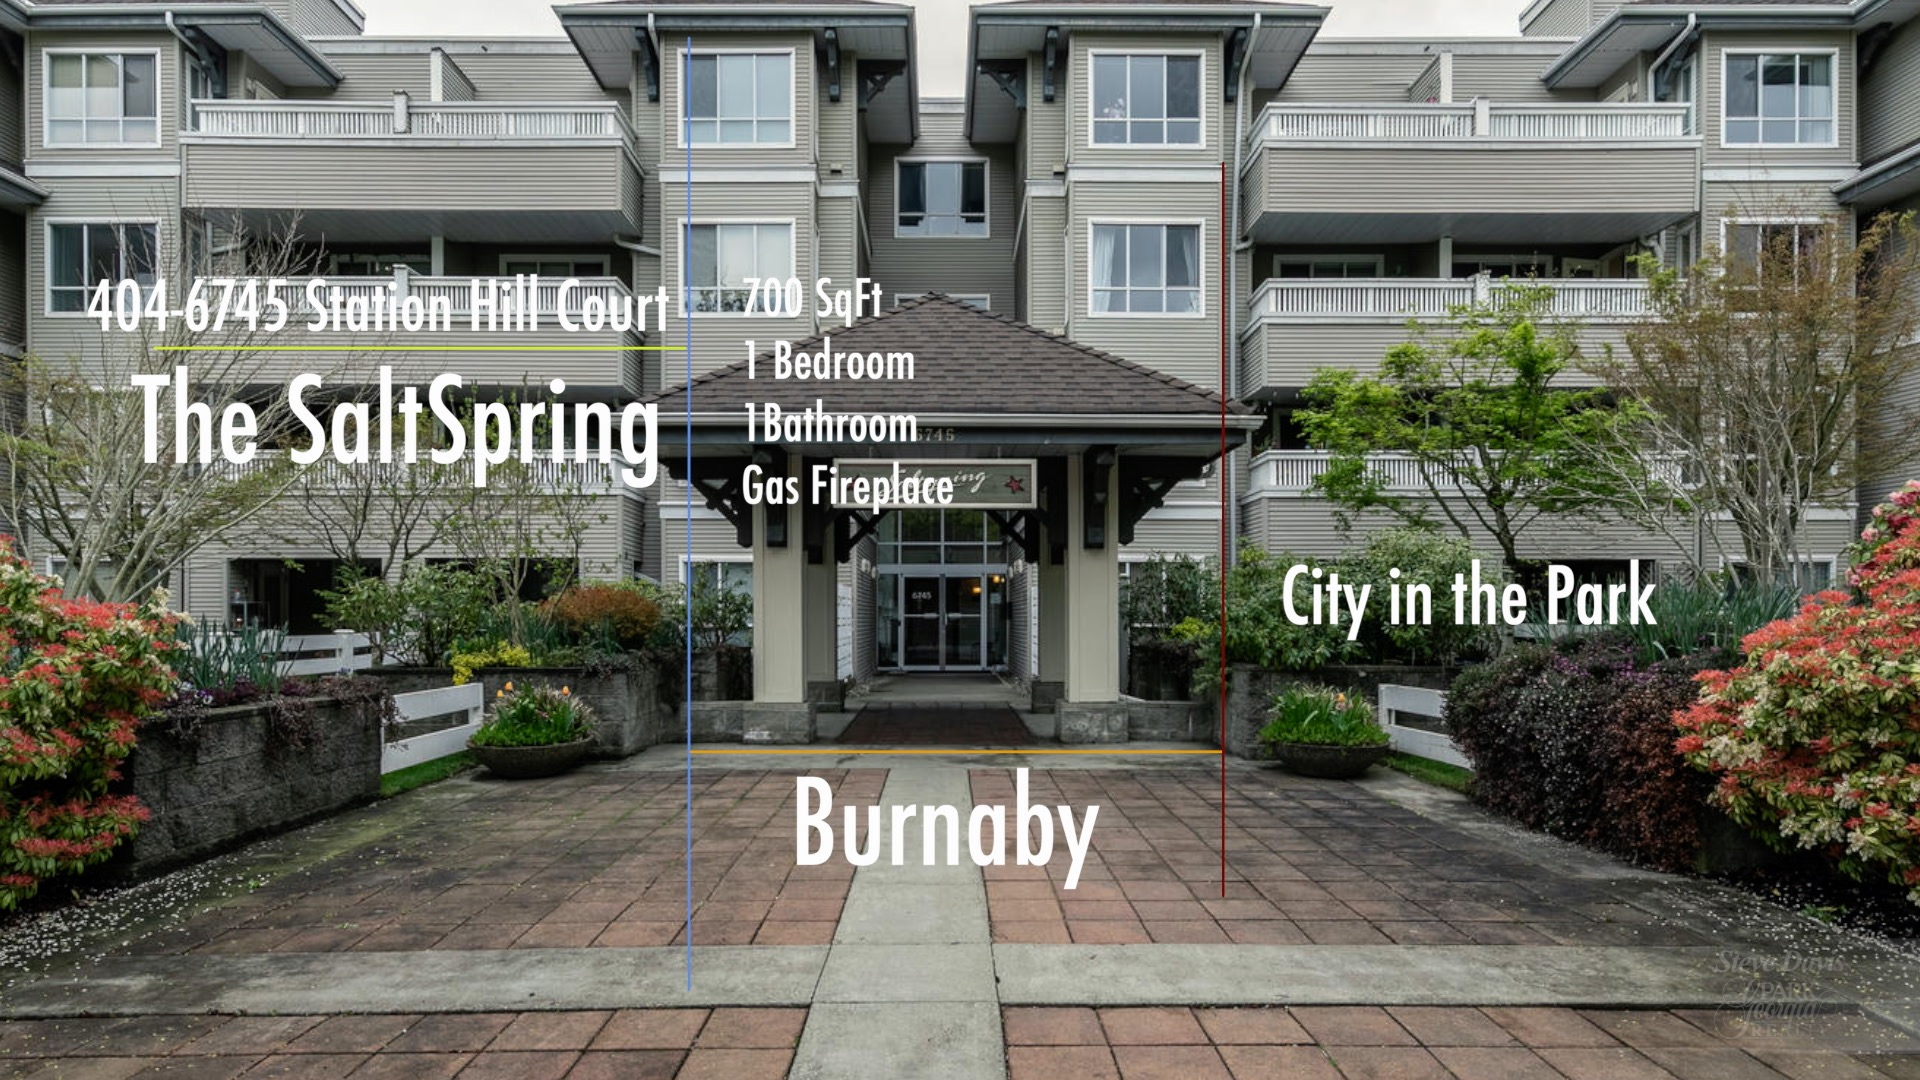 404 6745 station hill court 03 15 2020